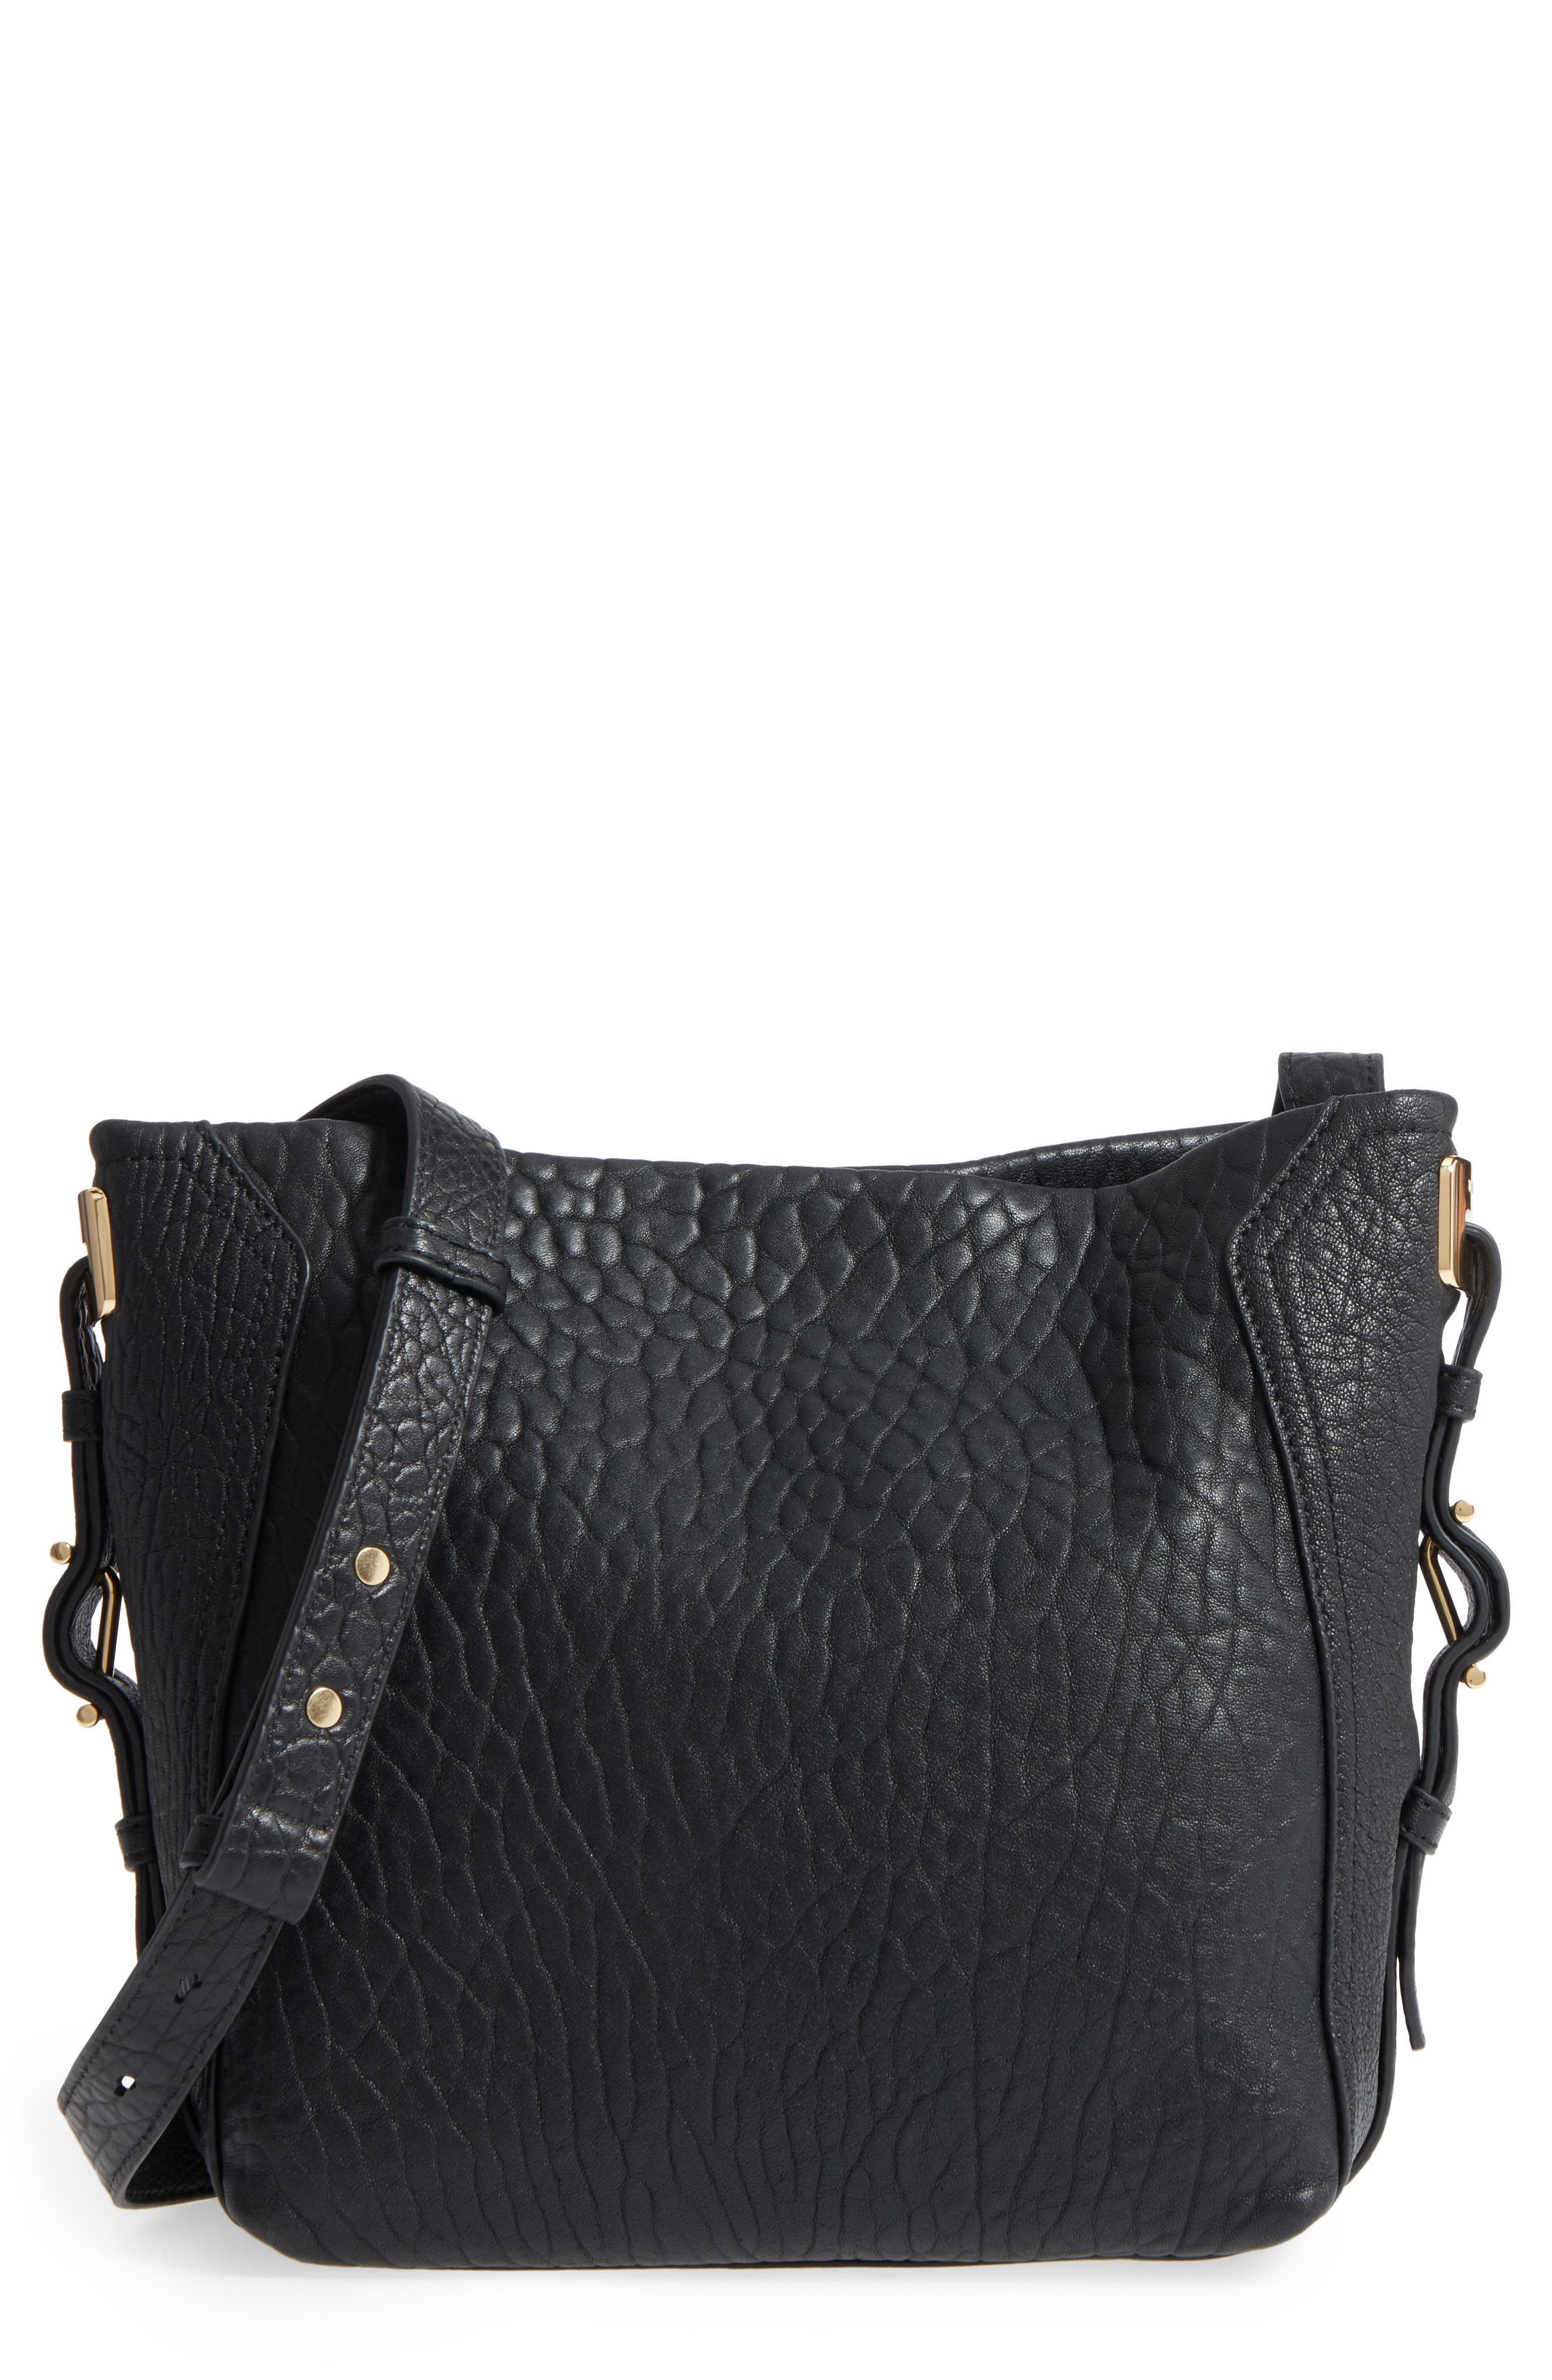 Vince Camuto Fava Leather Bucket Bag